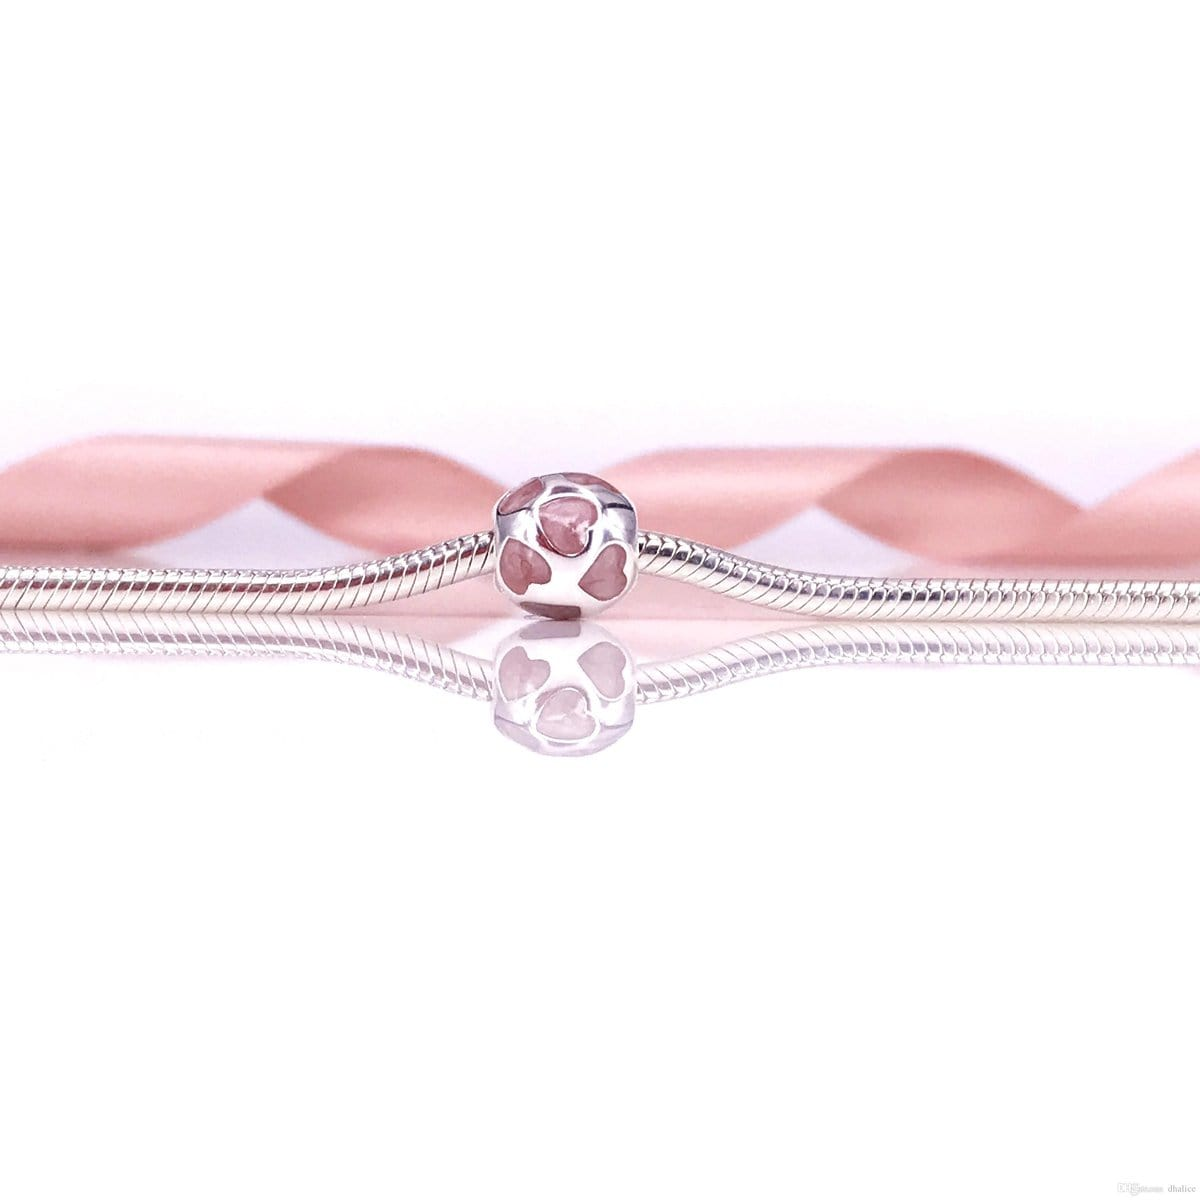 Love You Pink Enamel Charm - 790543EN28-Pandora-Renee Taylor Gallery